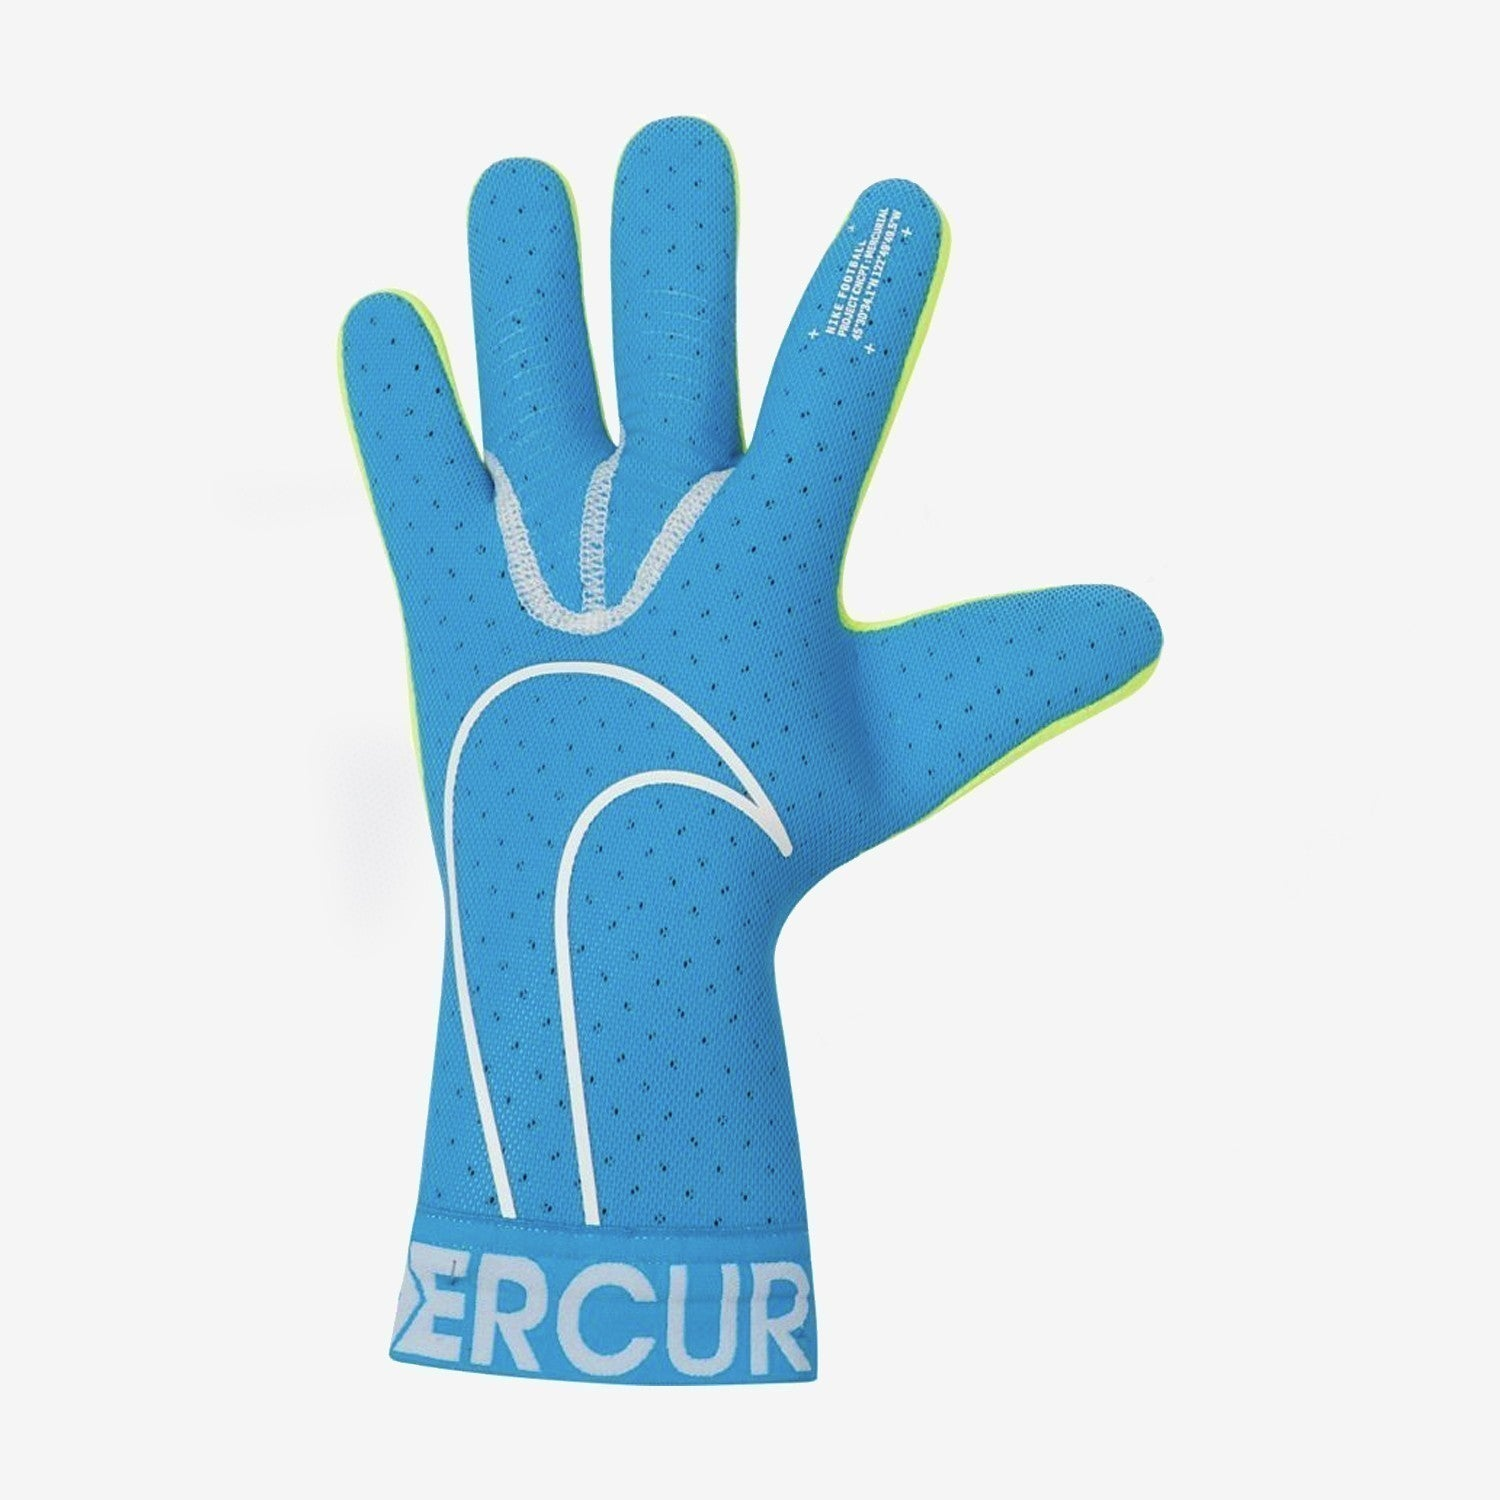 Mercurial Touch Elite FA19 Goalkeeper Gloves - Blue Hero/White